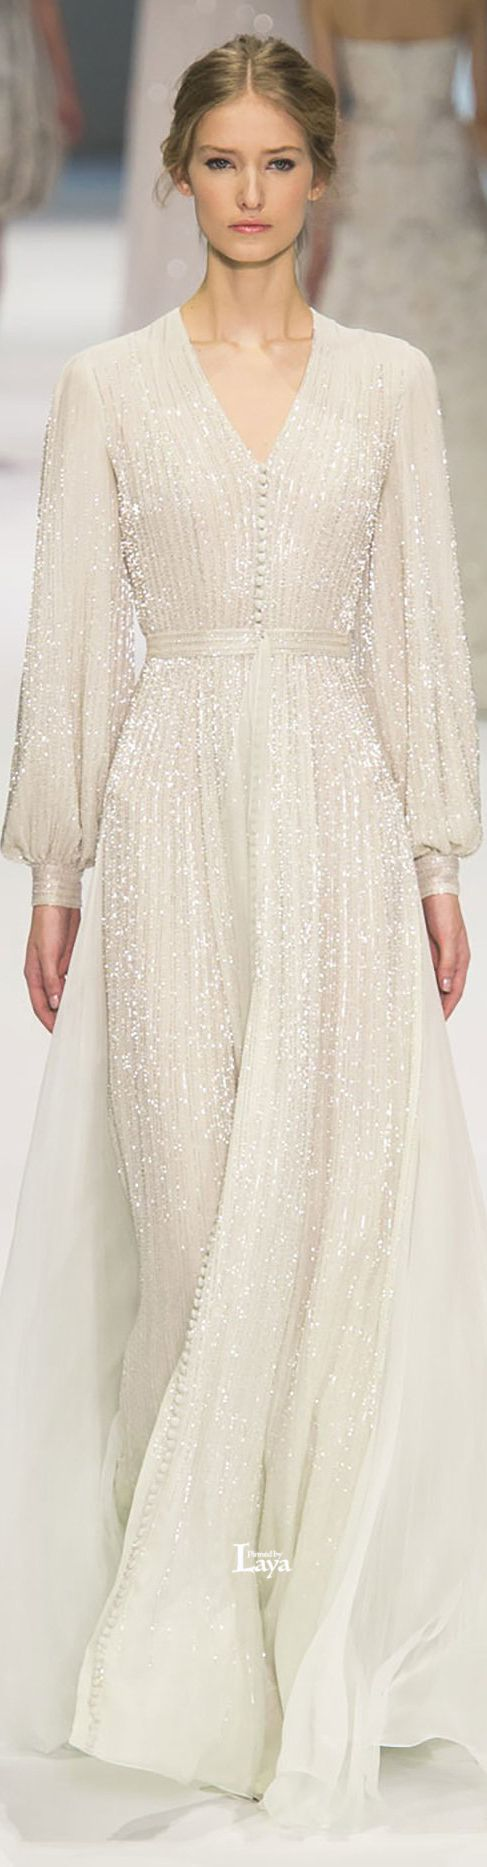 RALPH & RUSSO Spring-Summer 2015 COUTURE. V